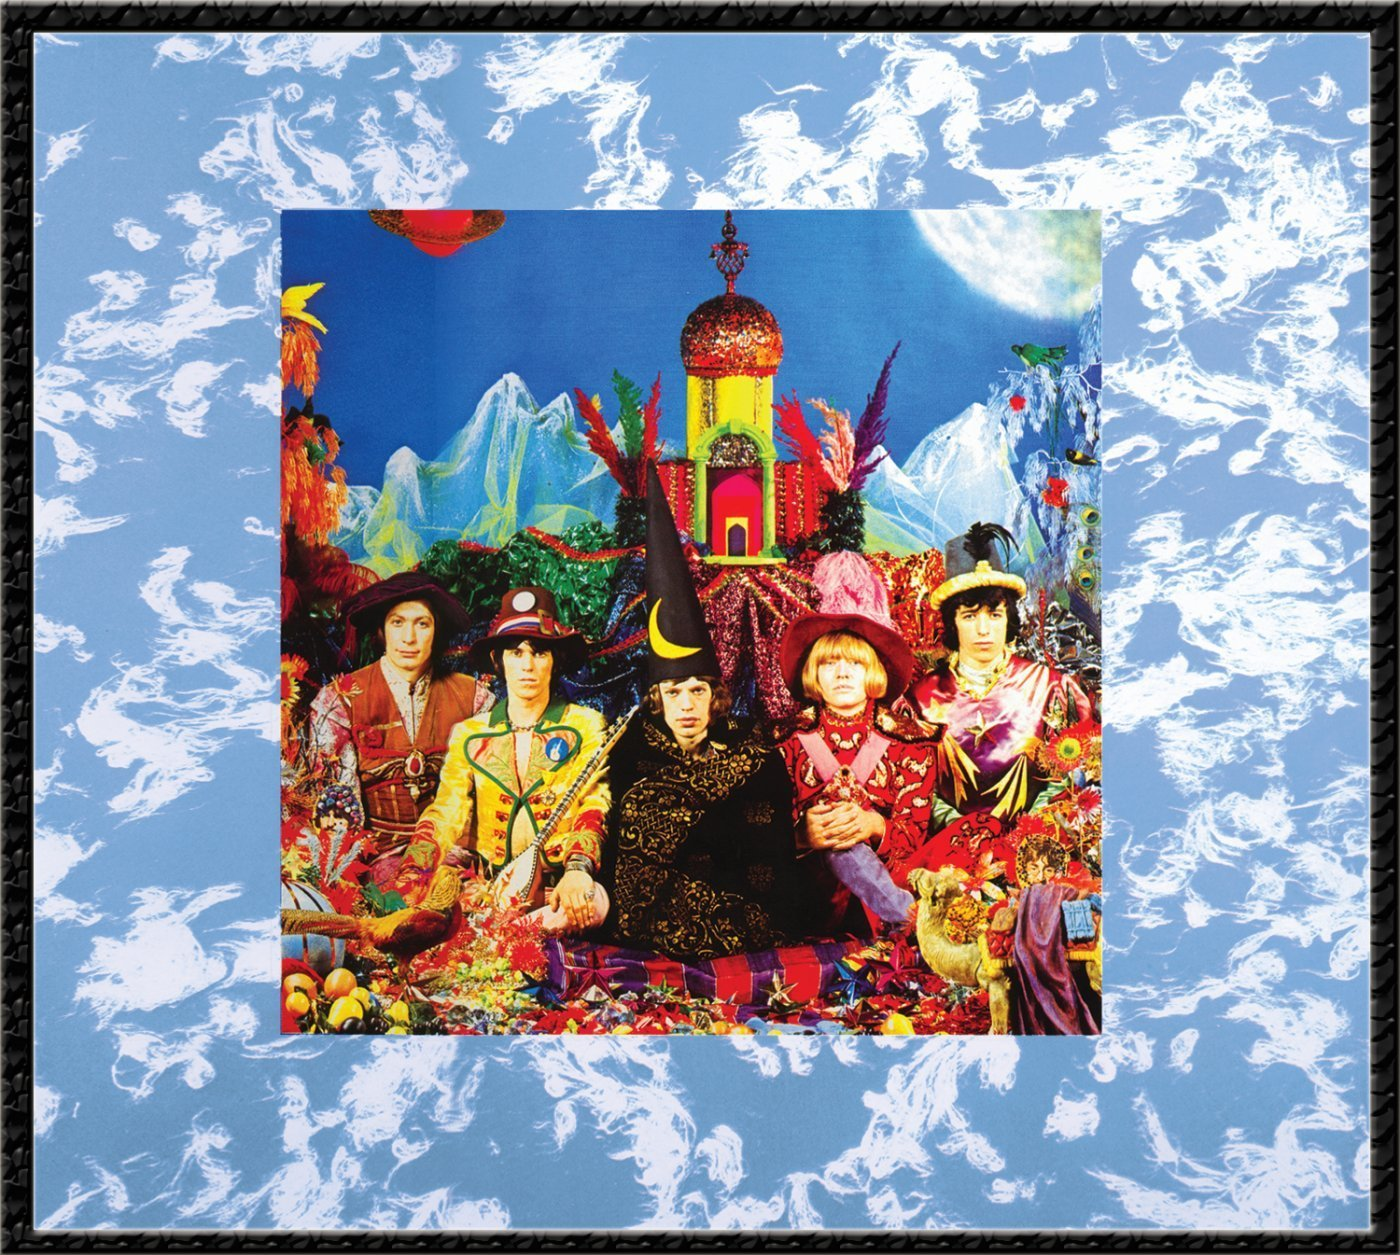 Rolling Stones – Their Satanic Majesties Request (ABKCO)